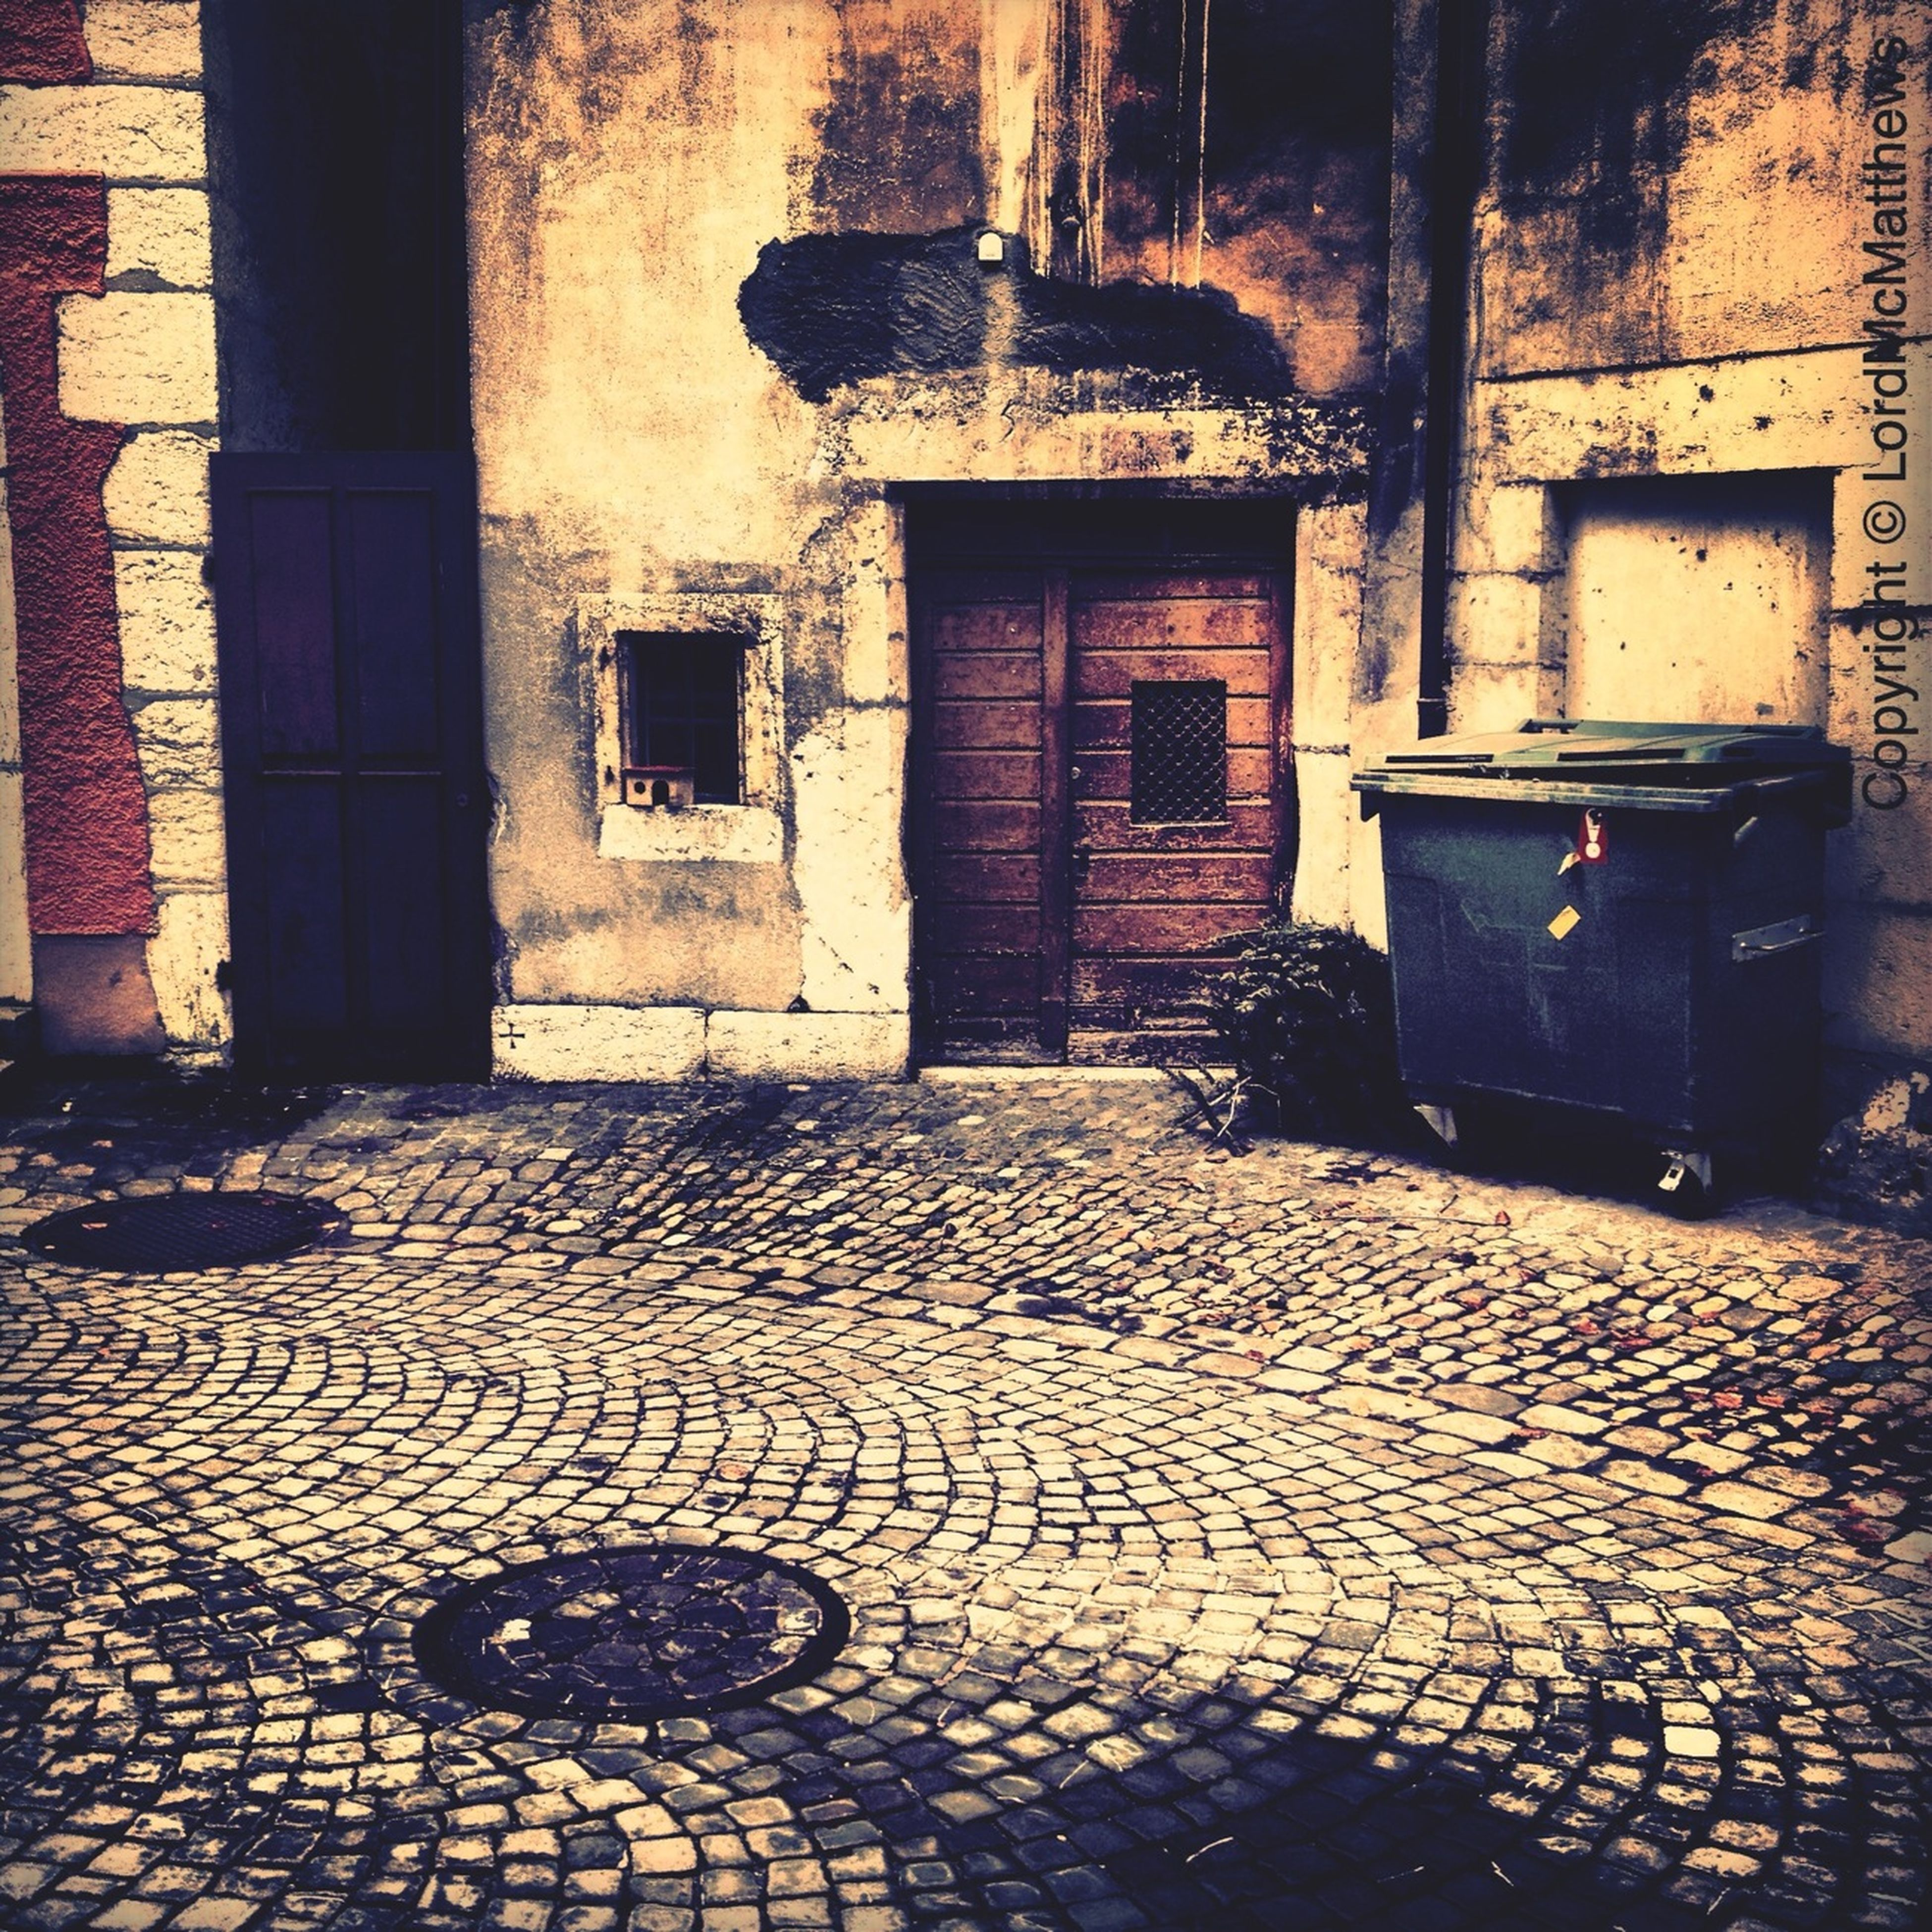 architecture, built structure, building exterior, window, old, house, abandoned, cobblestone, building, absence, residential structure, residential building, wall - building feature, door, day, damaged, sunlight, obsolete, no people, street